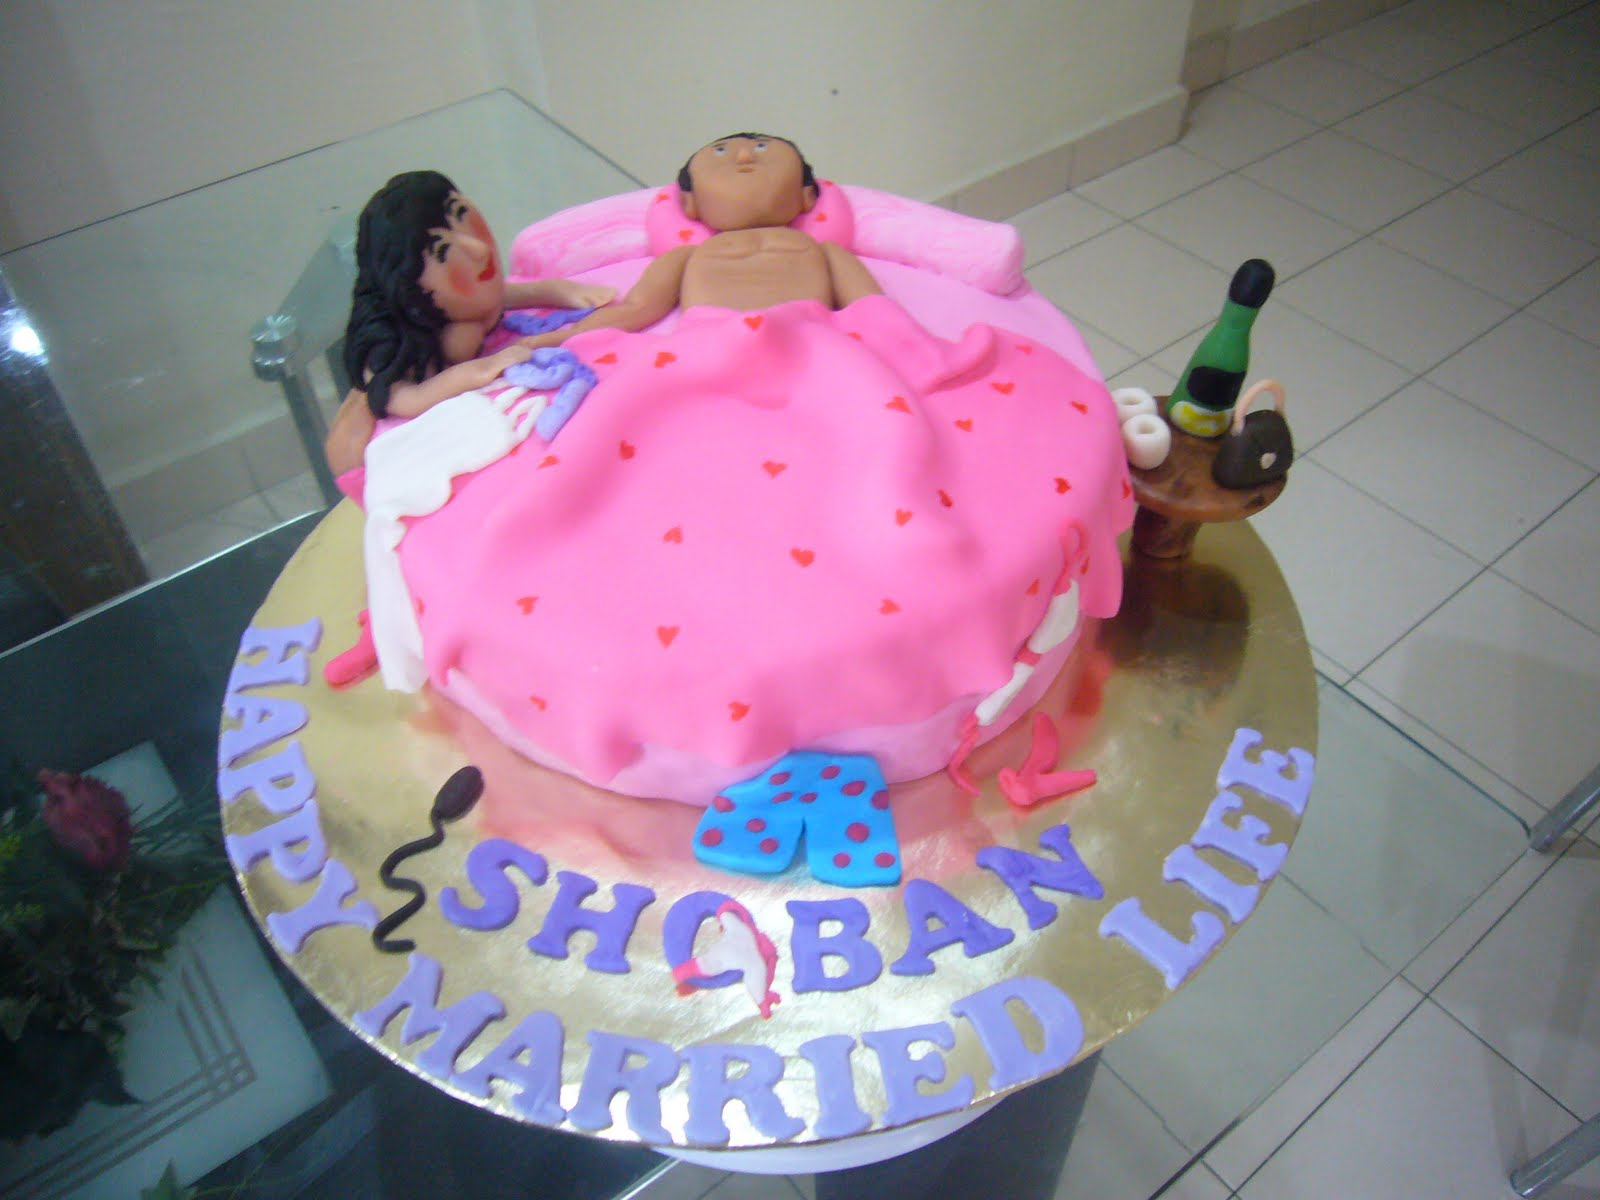 Naughty Bday Cake Images : SIMPLY DELICIOUS CAKES: NAUGHTY CAKE - SEDUCTION